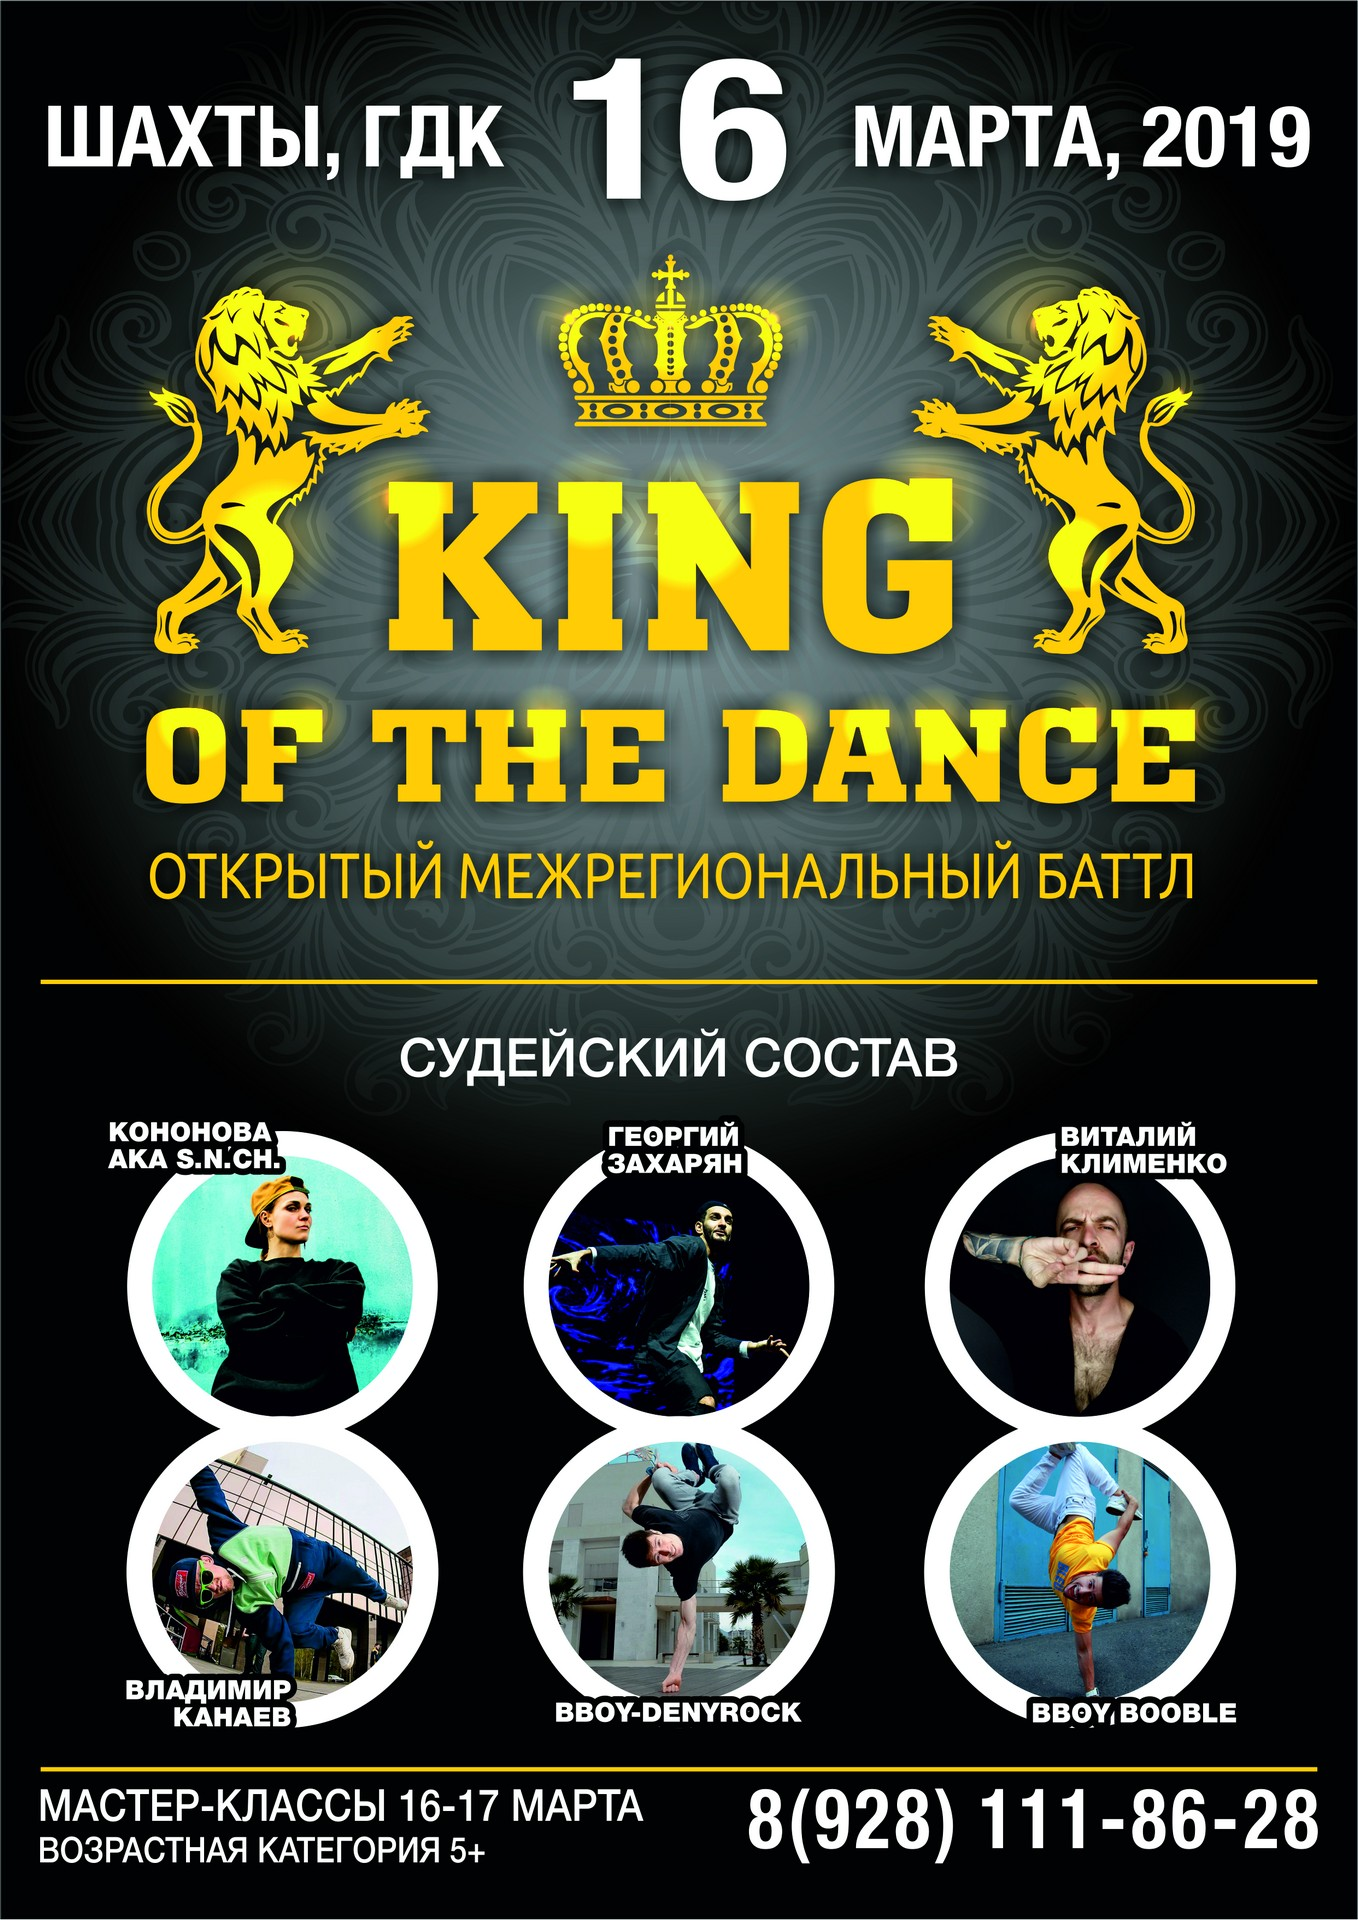 KING OF THE DANCE